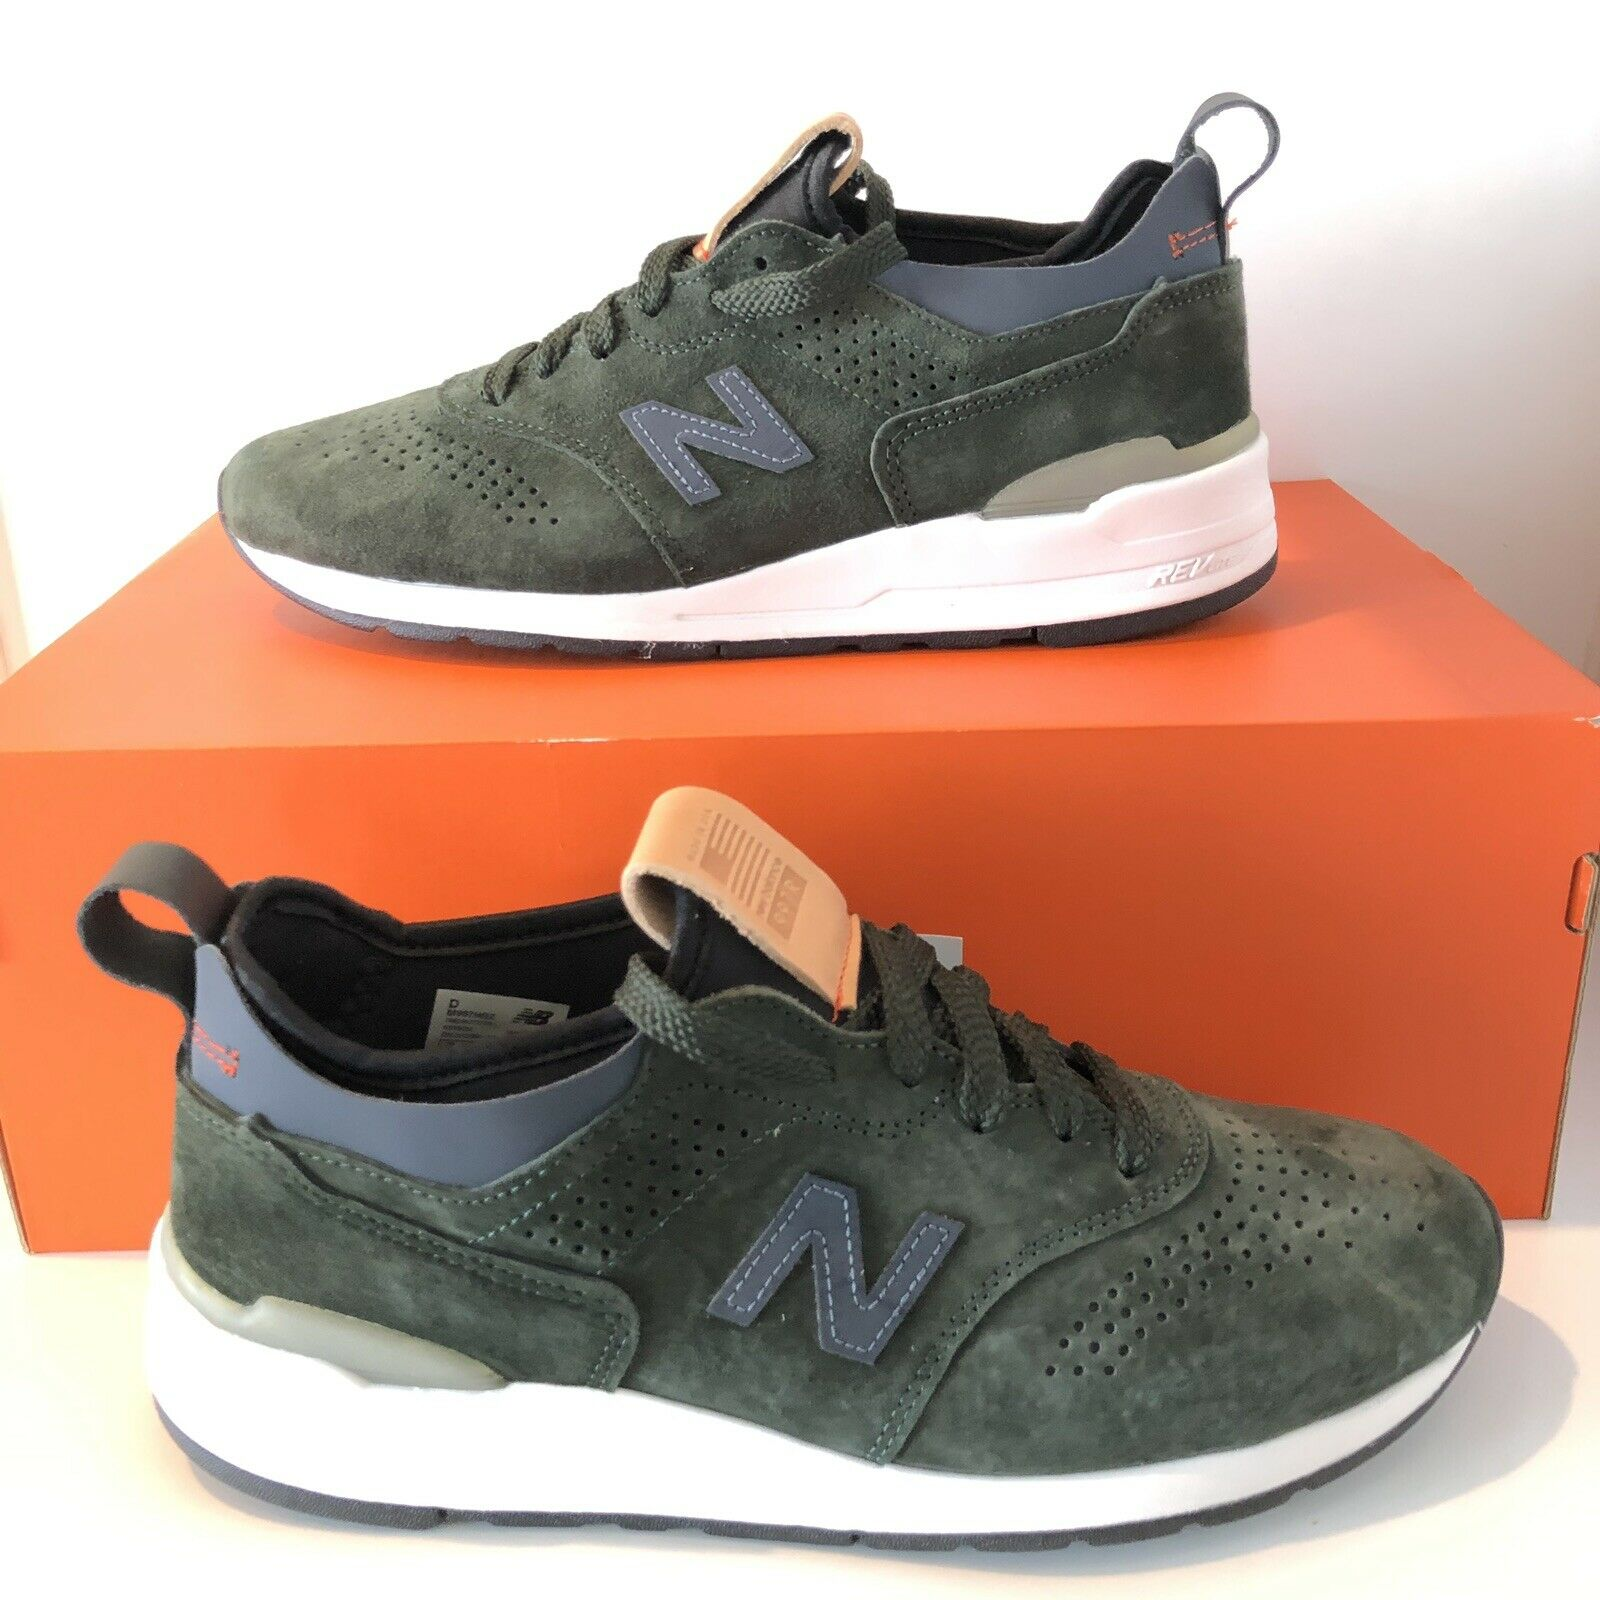 New Balance M997HB2 - Mens Size 8 - Made In USA - Brand new Women's 9.5 M997 997